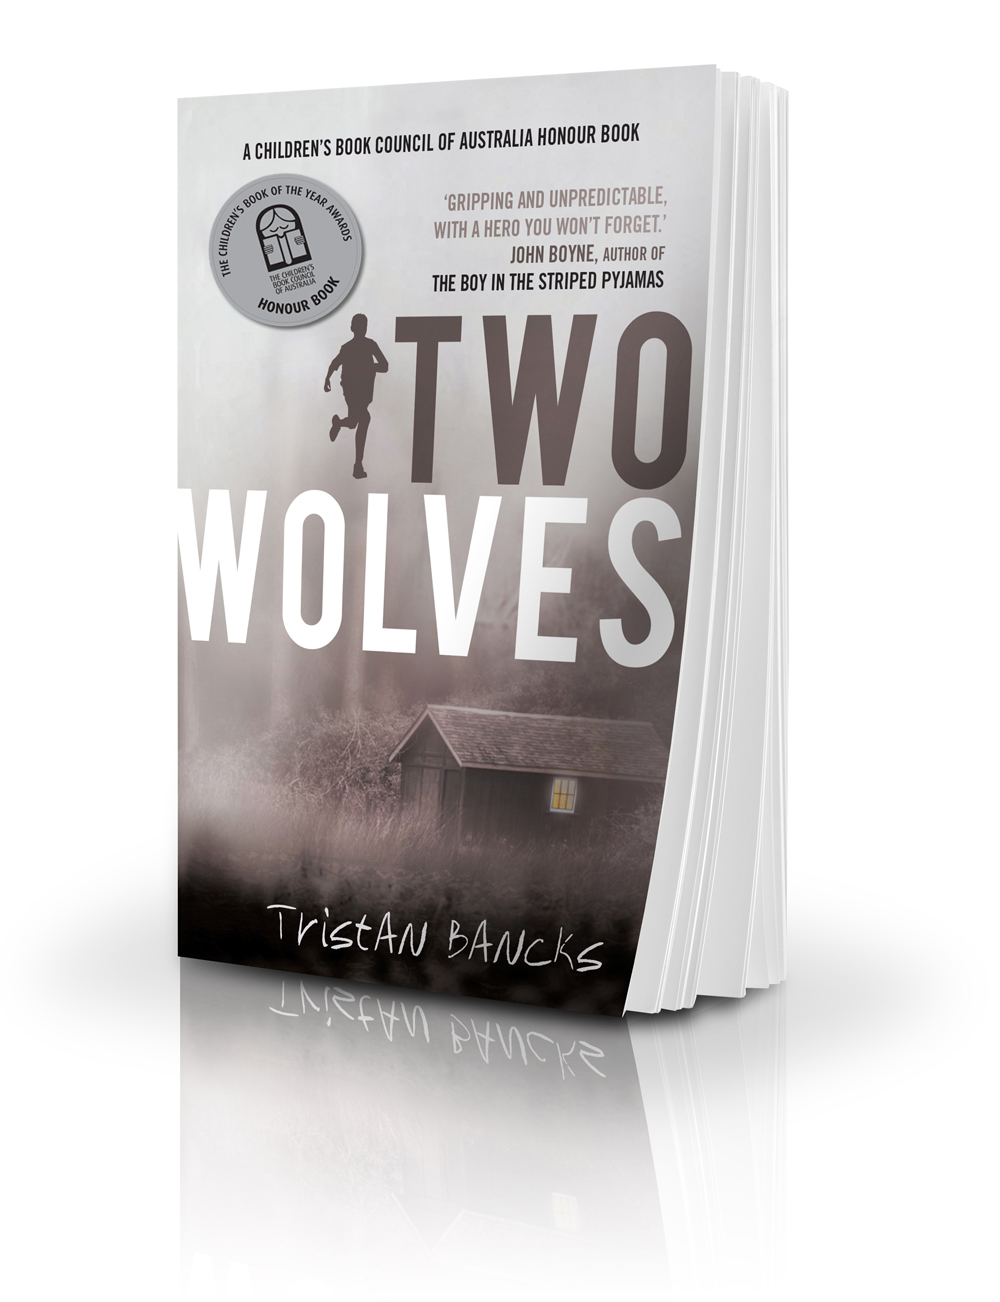 tristan bancks n children s teen author kids ya an old man tells his grandson one evening that there is a battle raging inside him inside all of us a terrible battle between two wolves